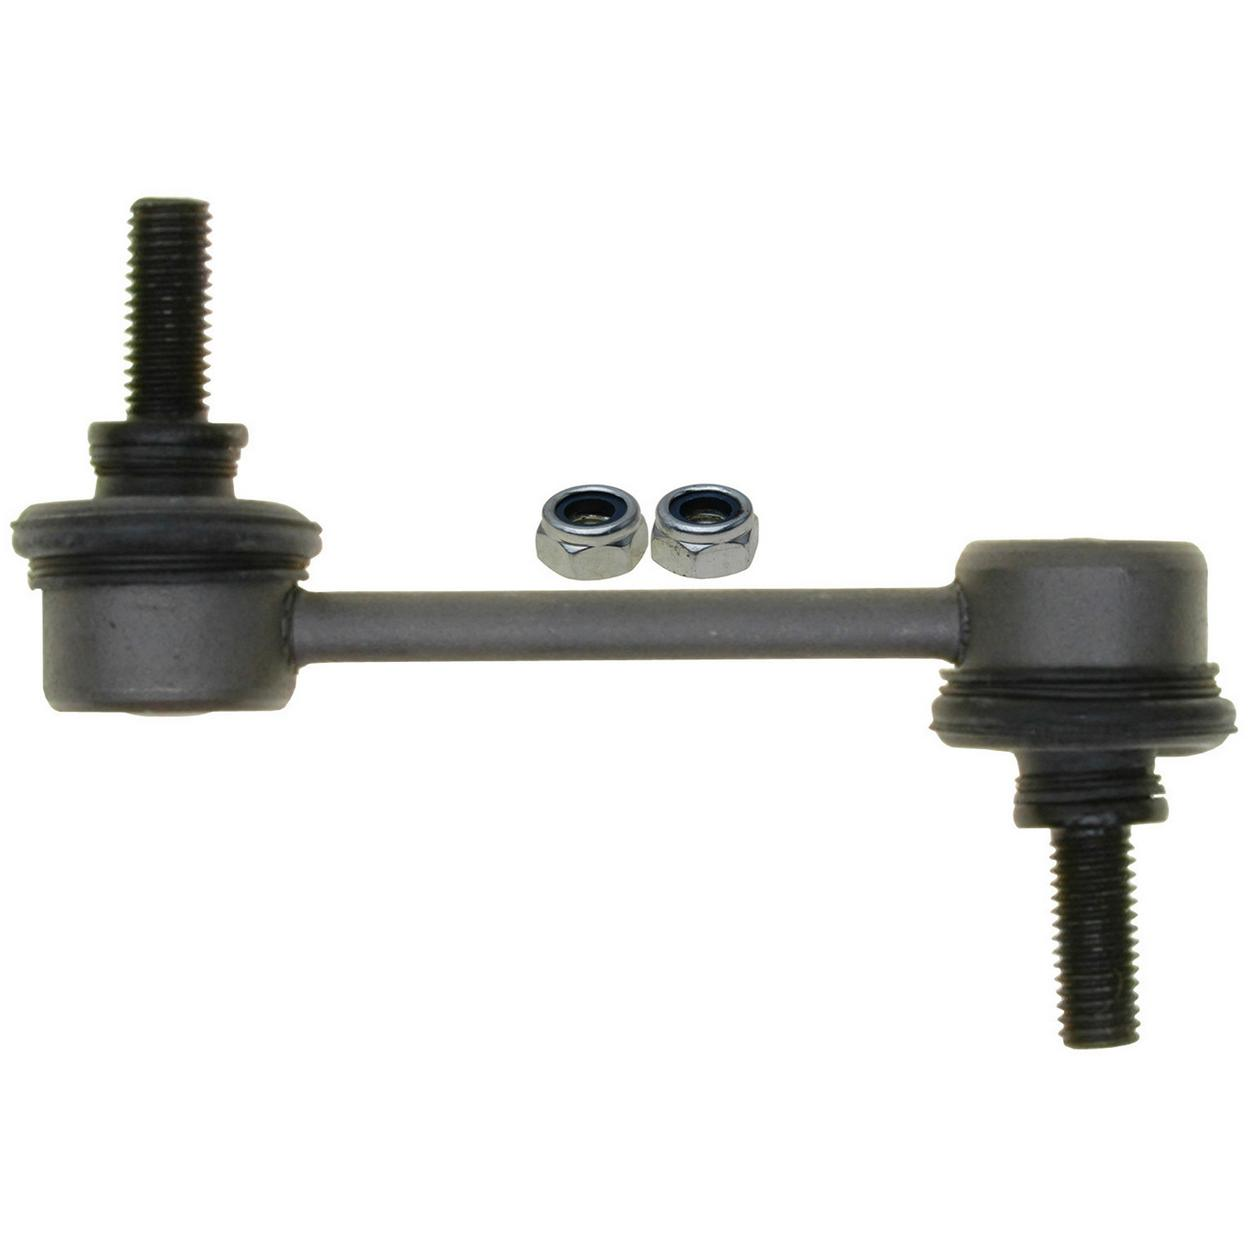 For Ford Probe 626 MX-6 Mazda Pair Set of 2 Rear Sway Bar End Links MOOG K80243